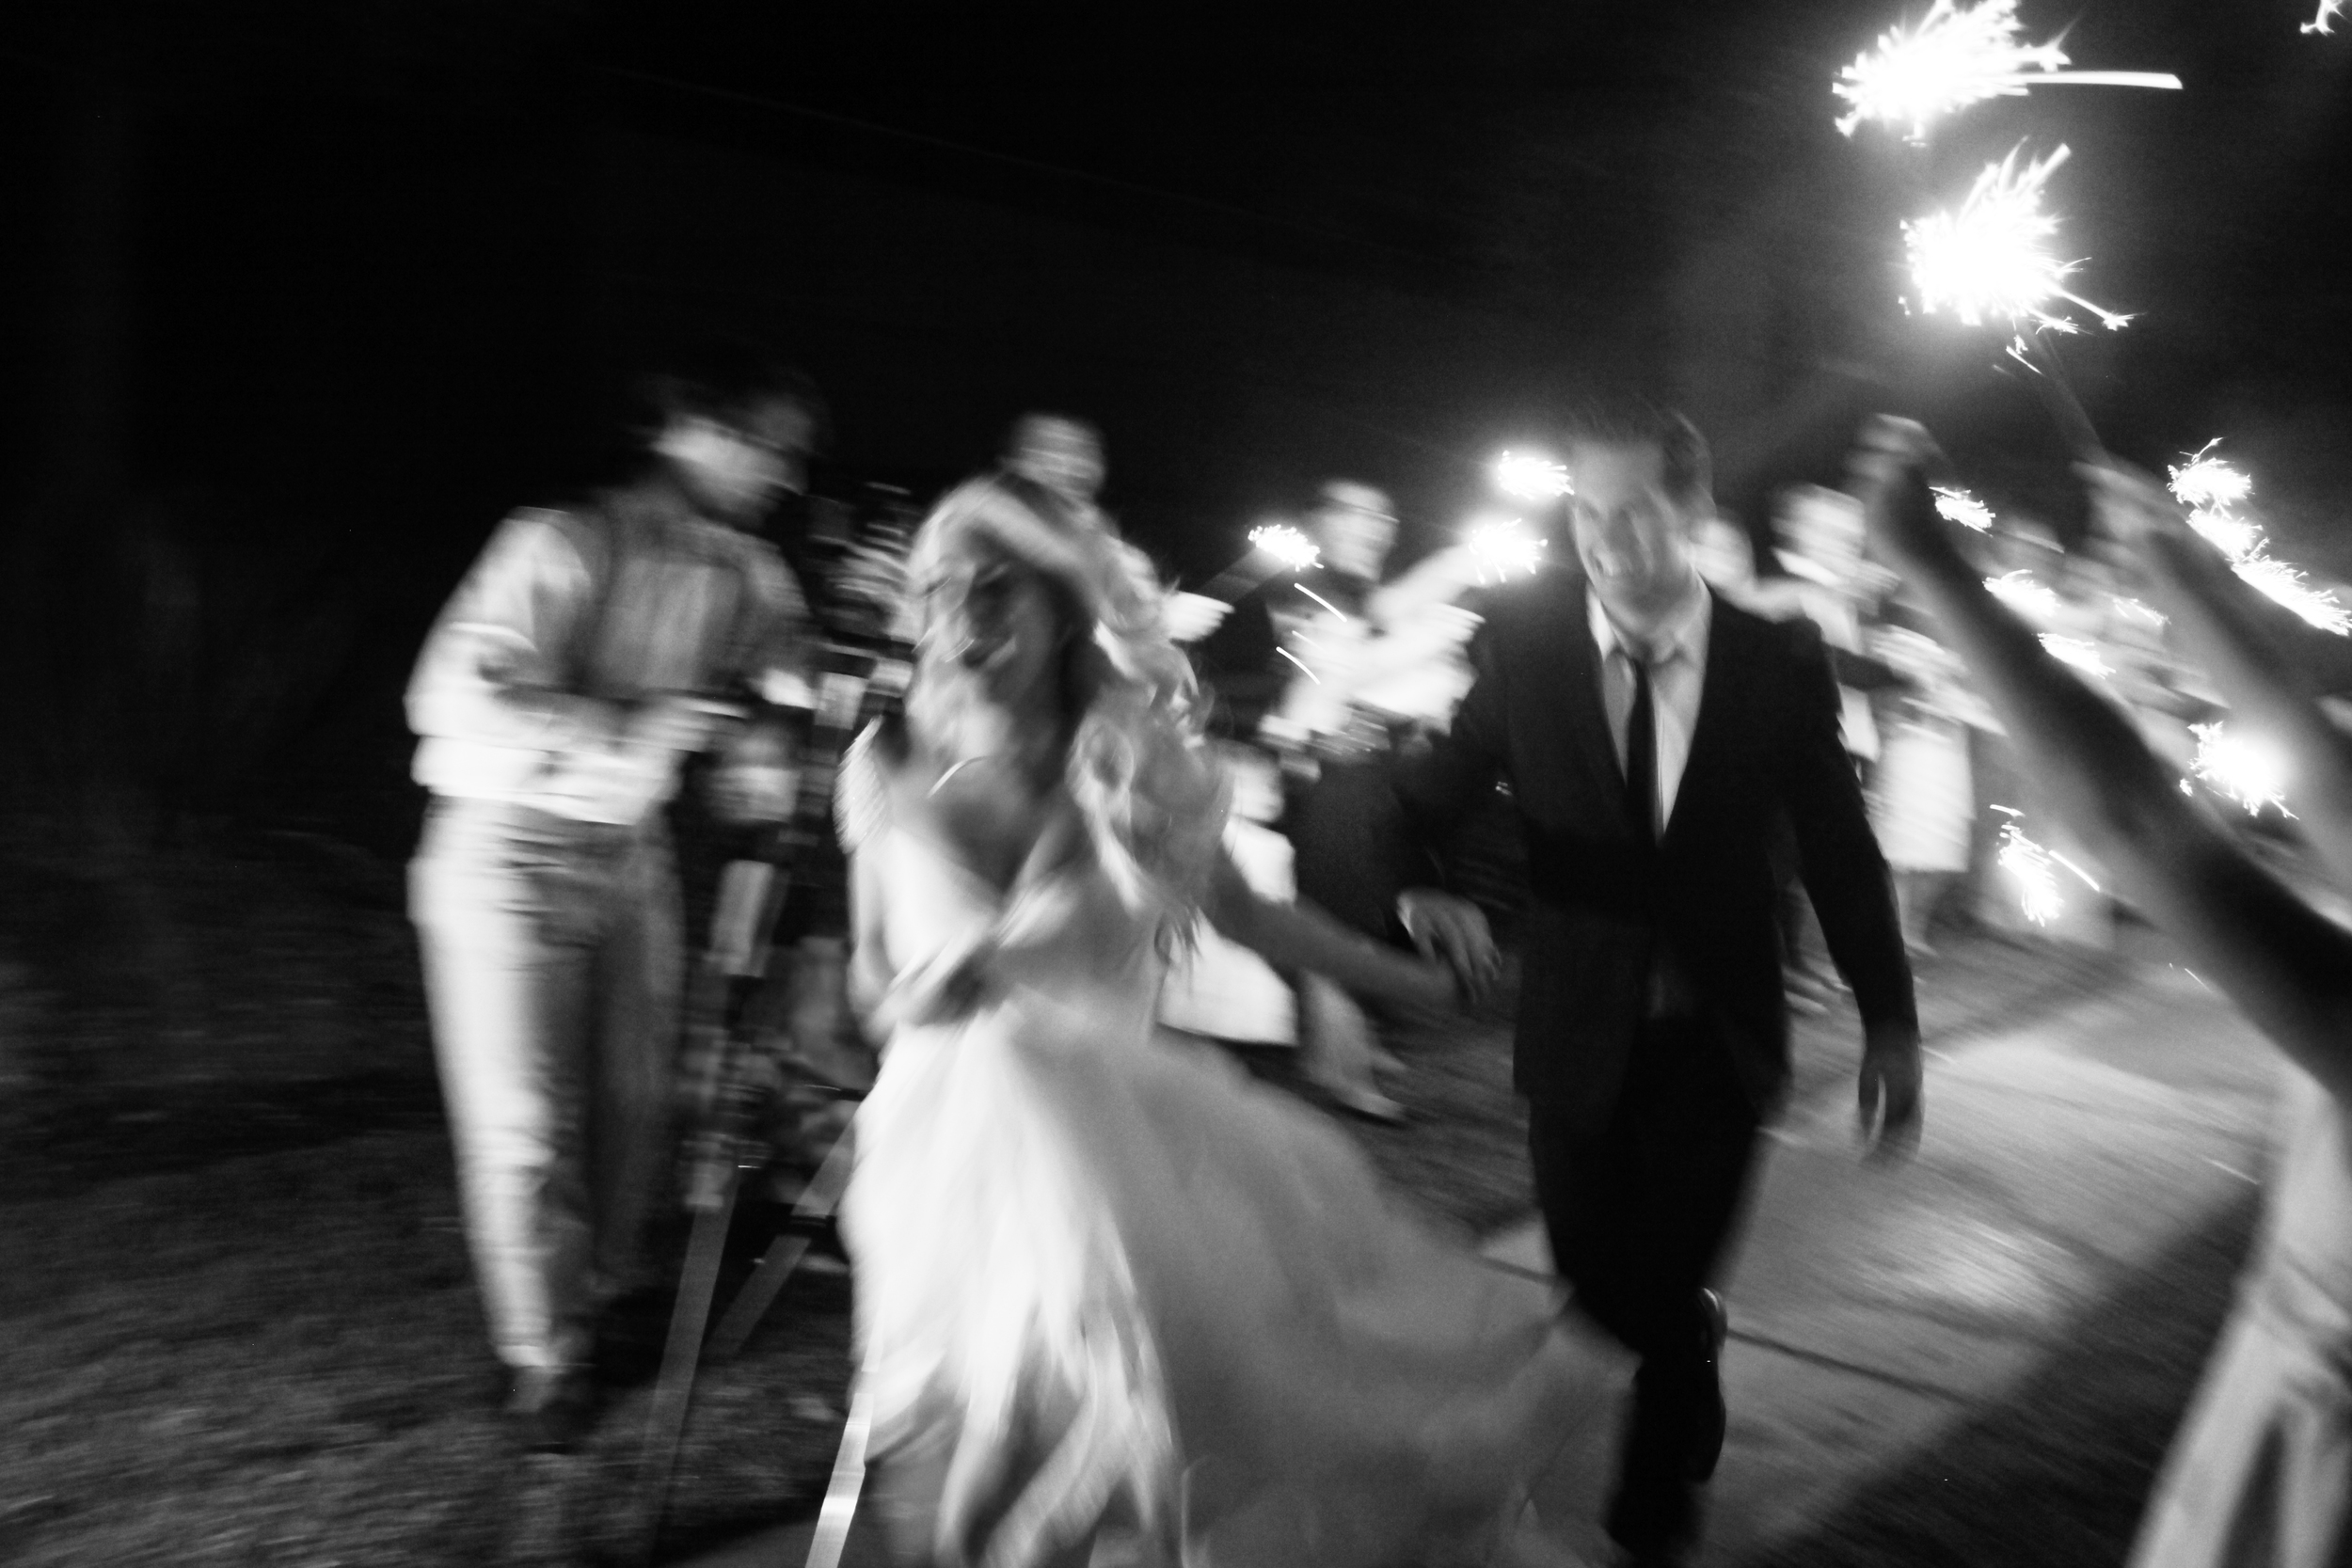 I love this final image especially because it's so blurry. You can just tell they are beyond stoked to be married and to be celebrated -- these are the true real, raw moments.